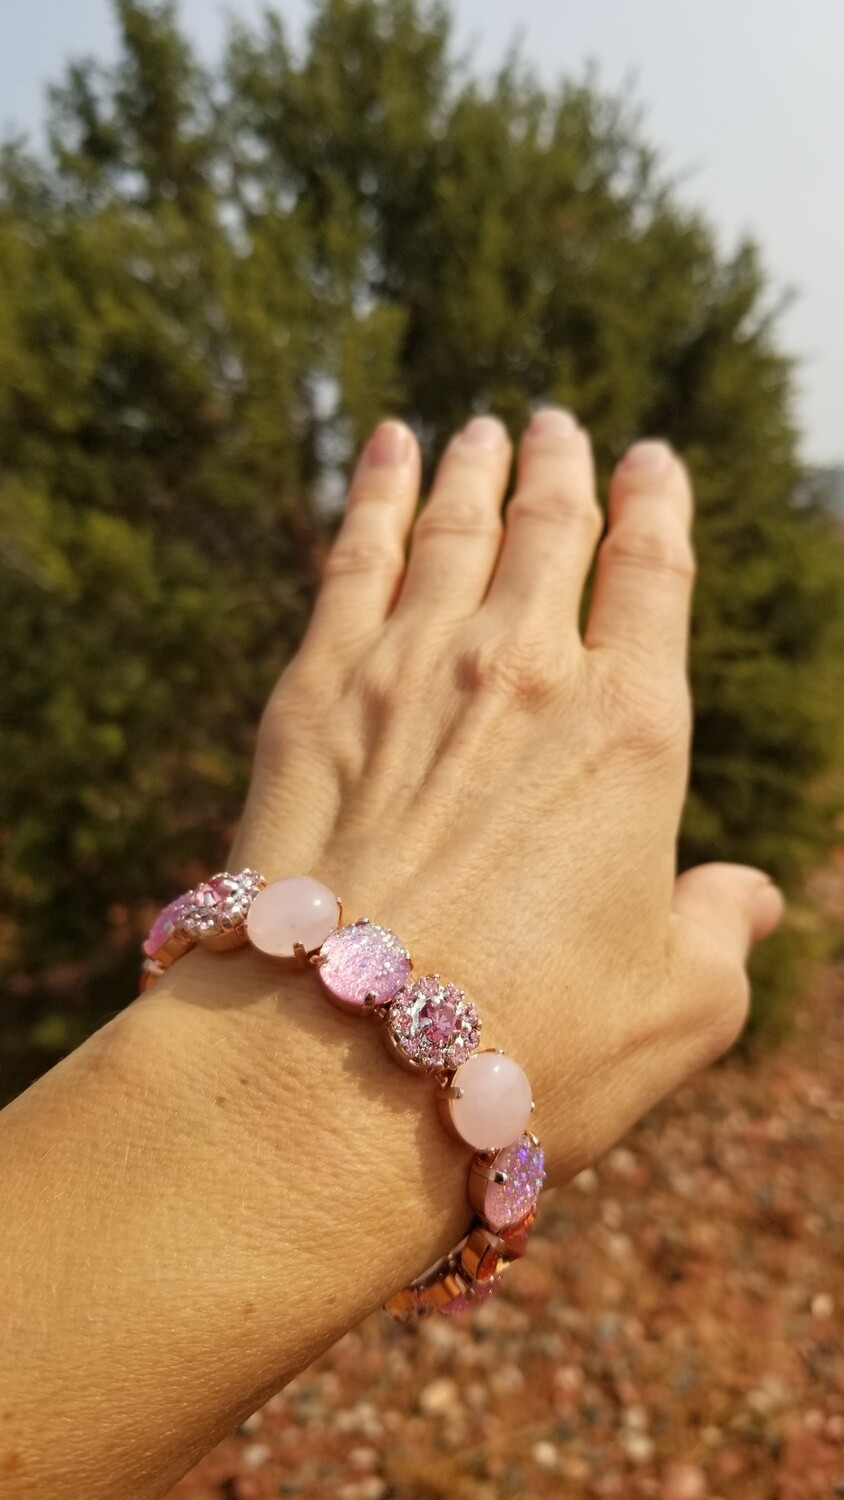 Rose Quartz Angels Sisters of the Sacred Rose Priestess/Devic Crystal LOVE Technology Bracelets $133.00/ $213.00 retreat sale